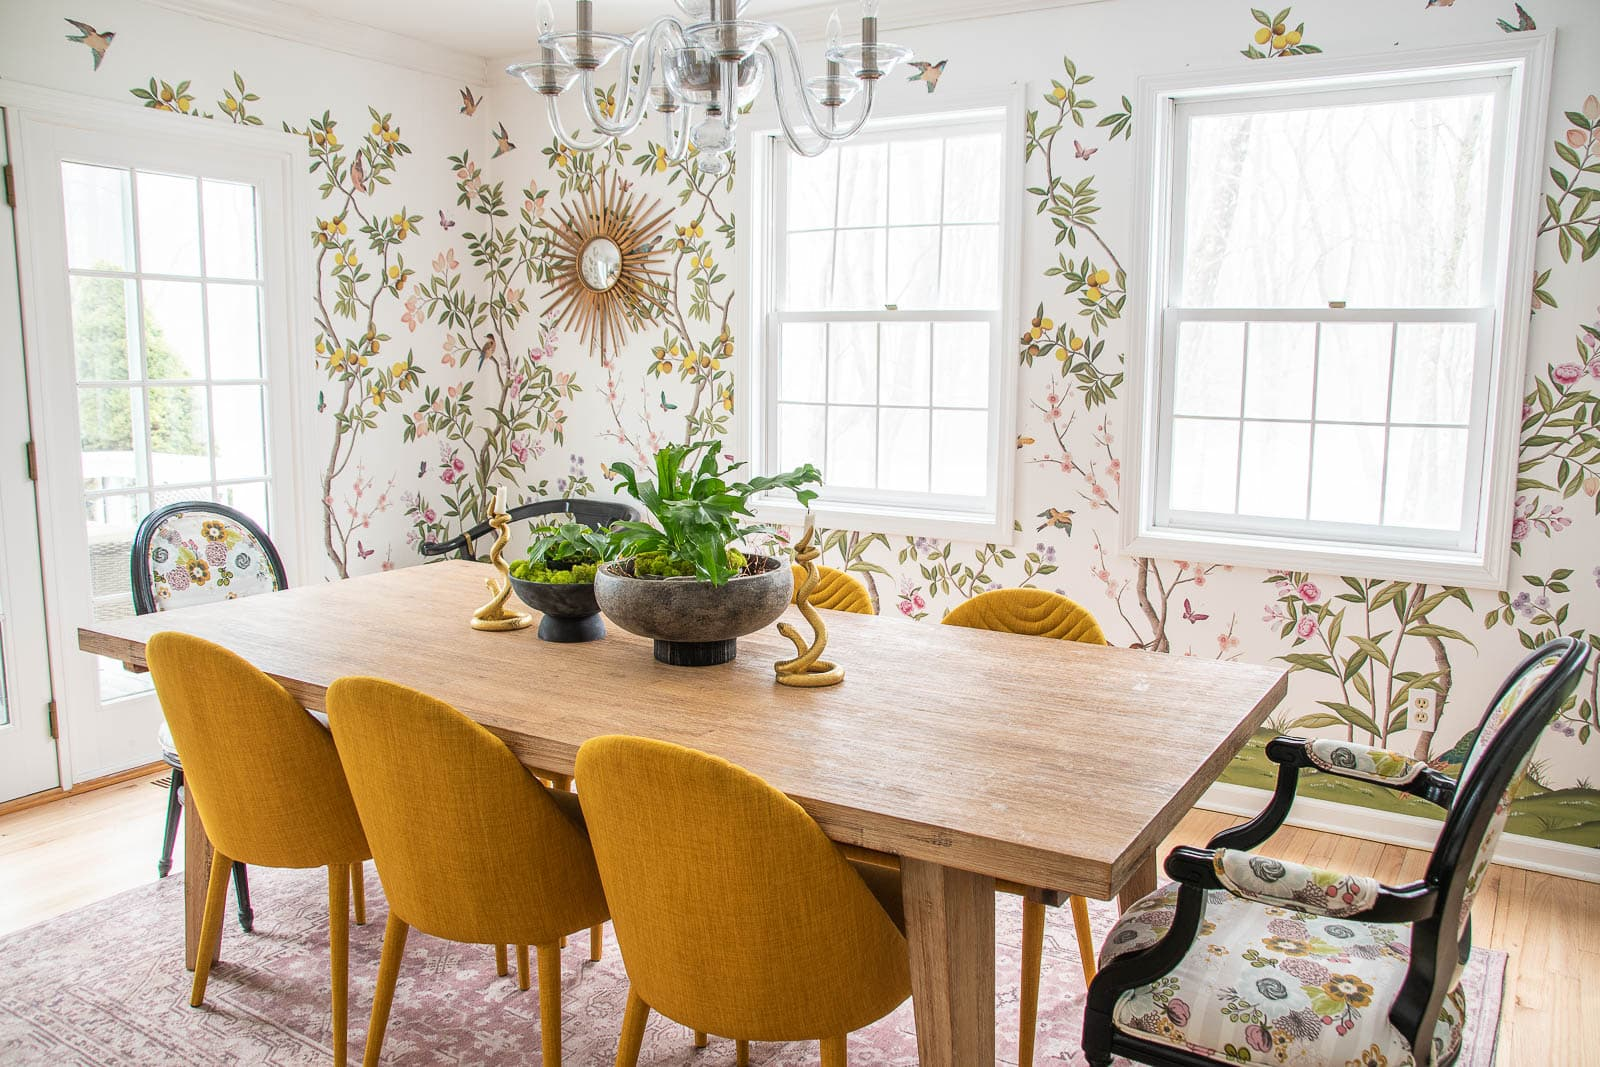 chinoiserie wallpaper in our dining room